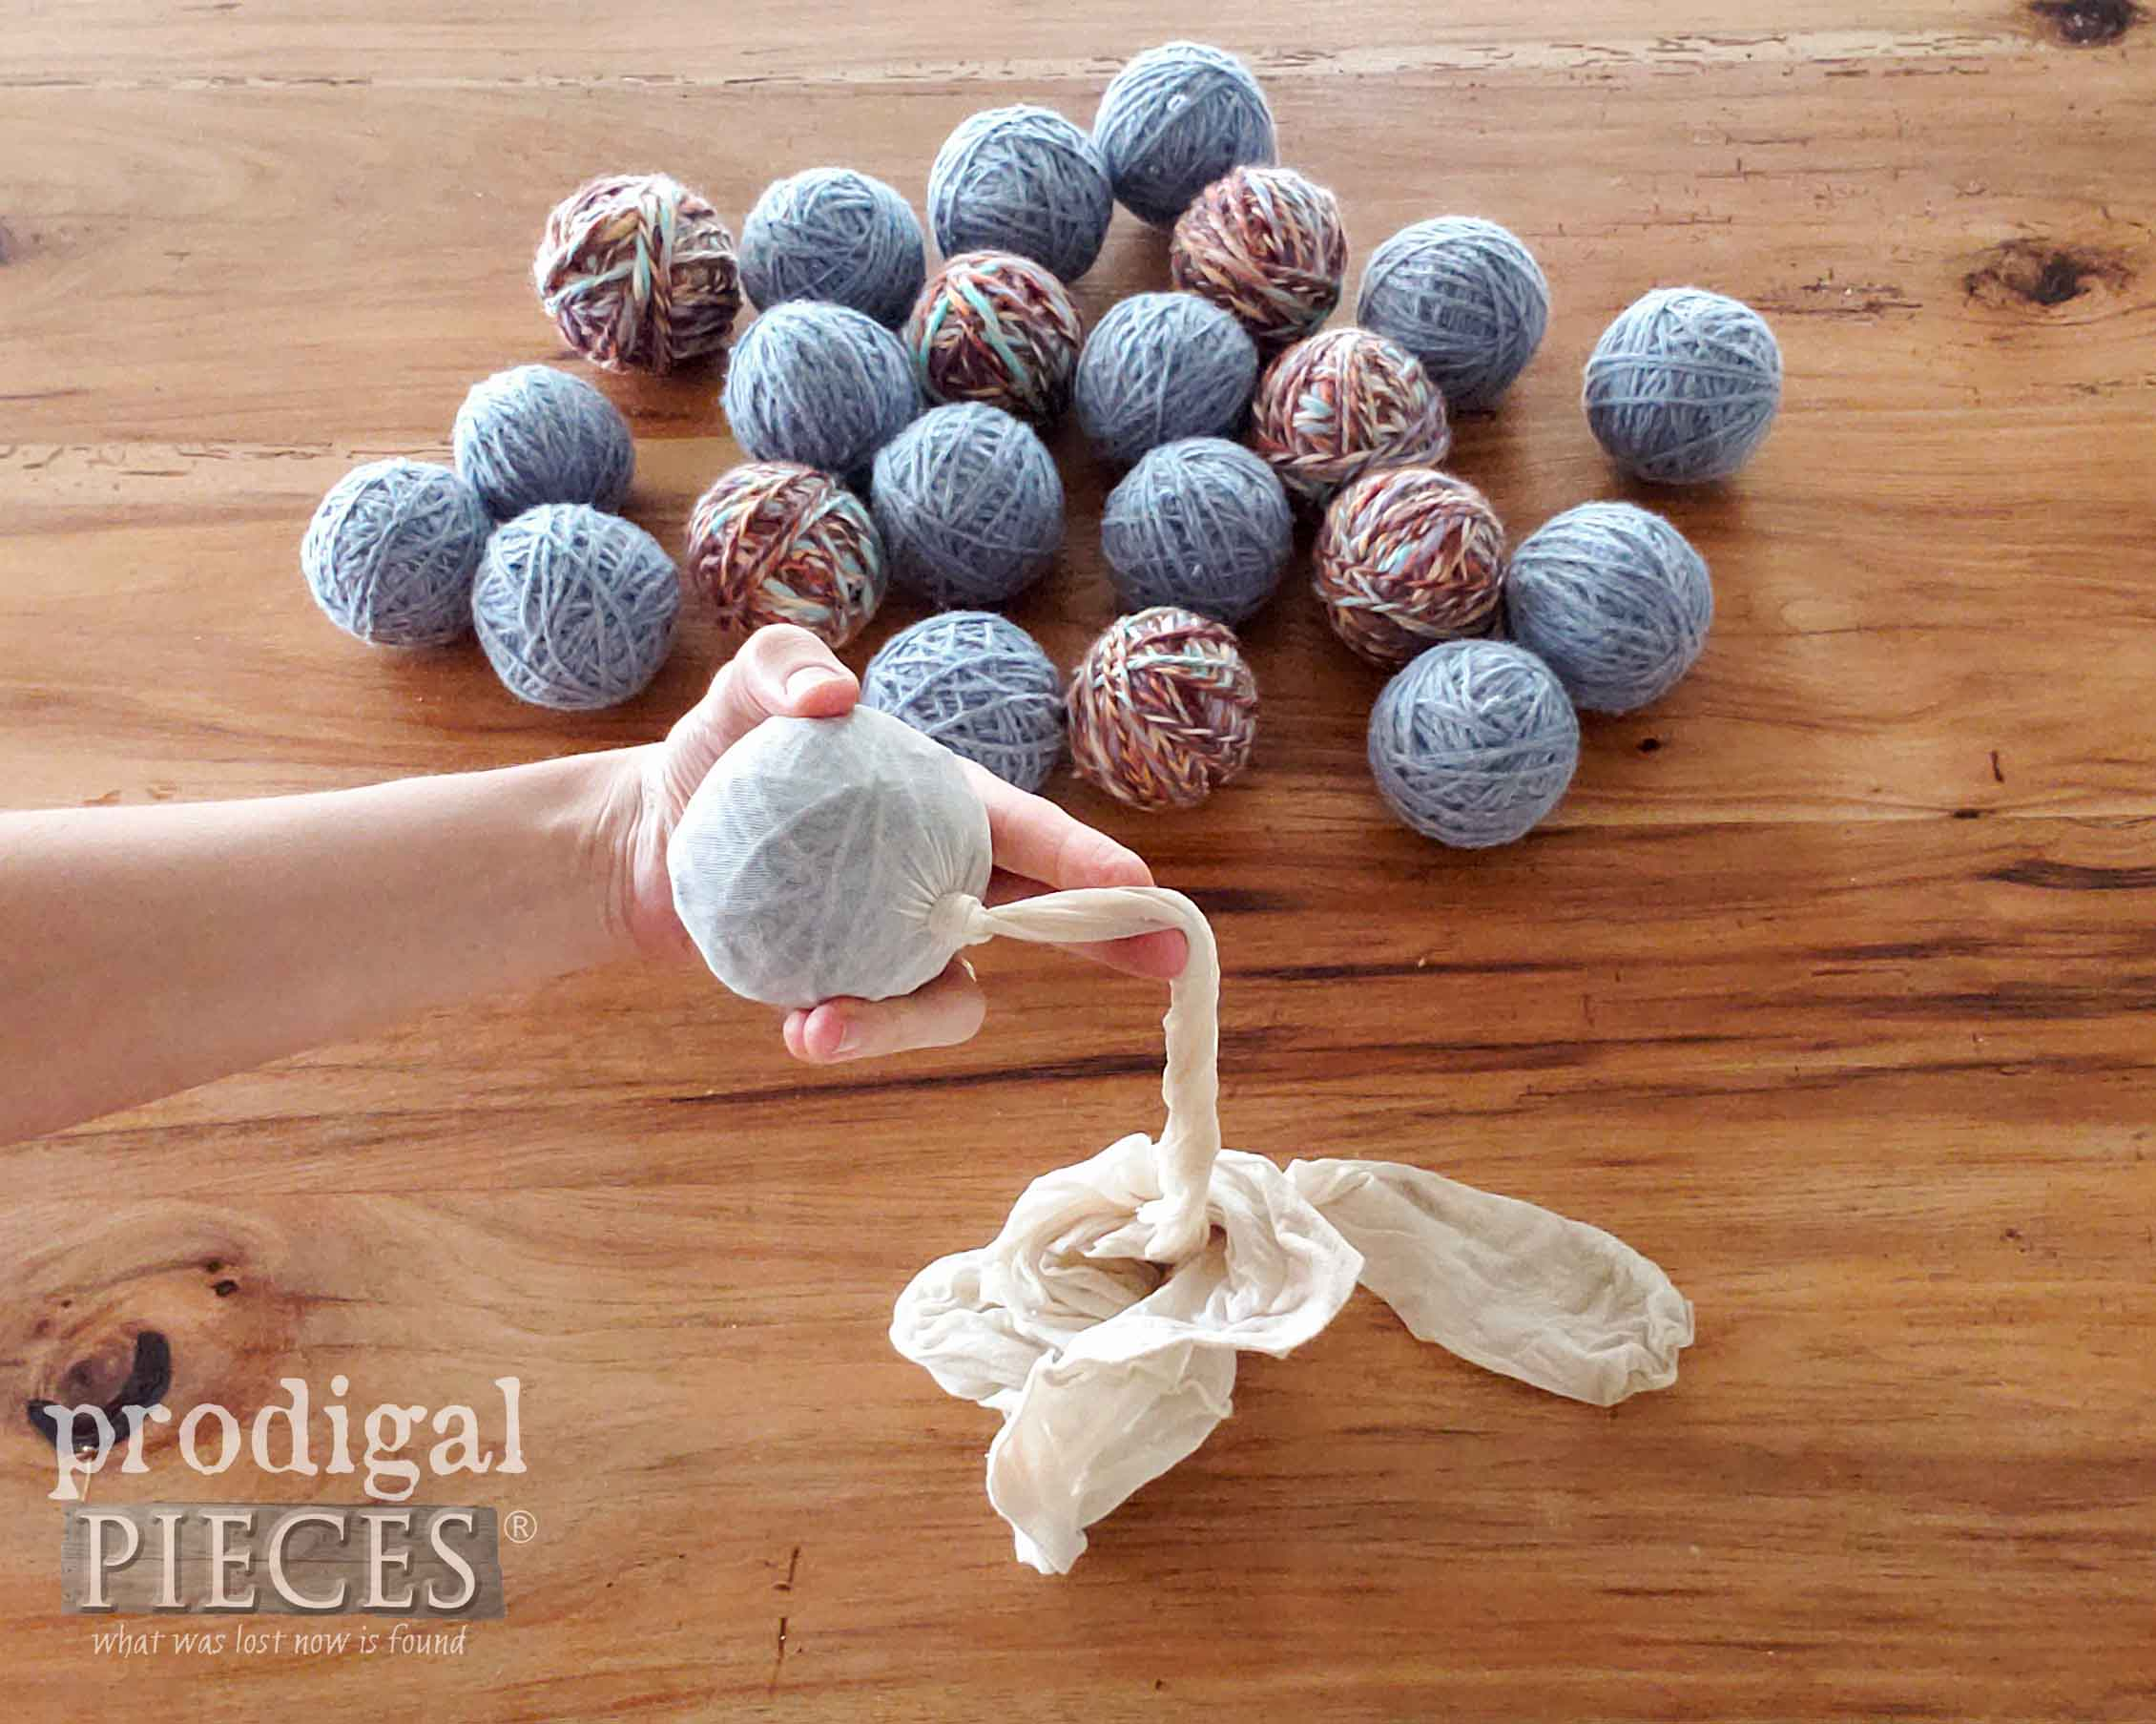 Knotting Wool Ball in Pantyhose | prodigalpieces.com